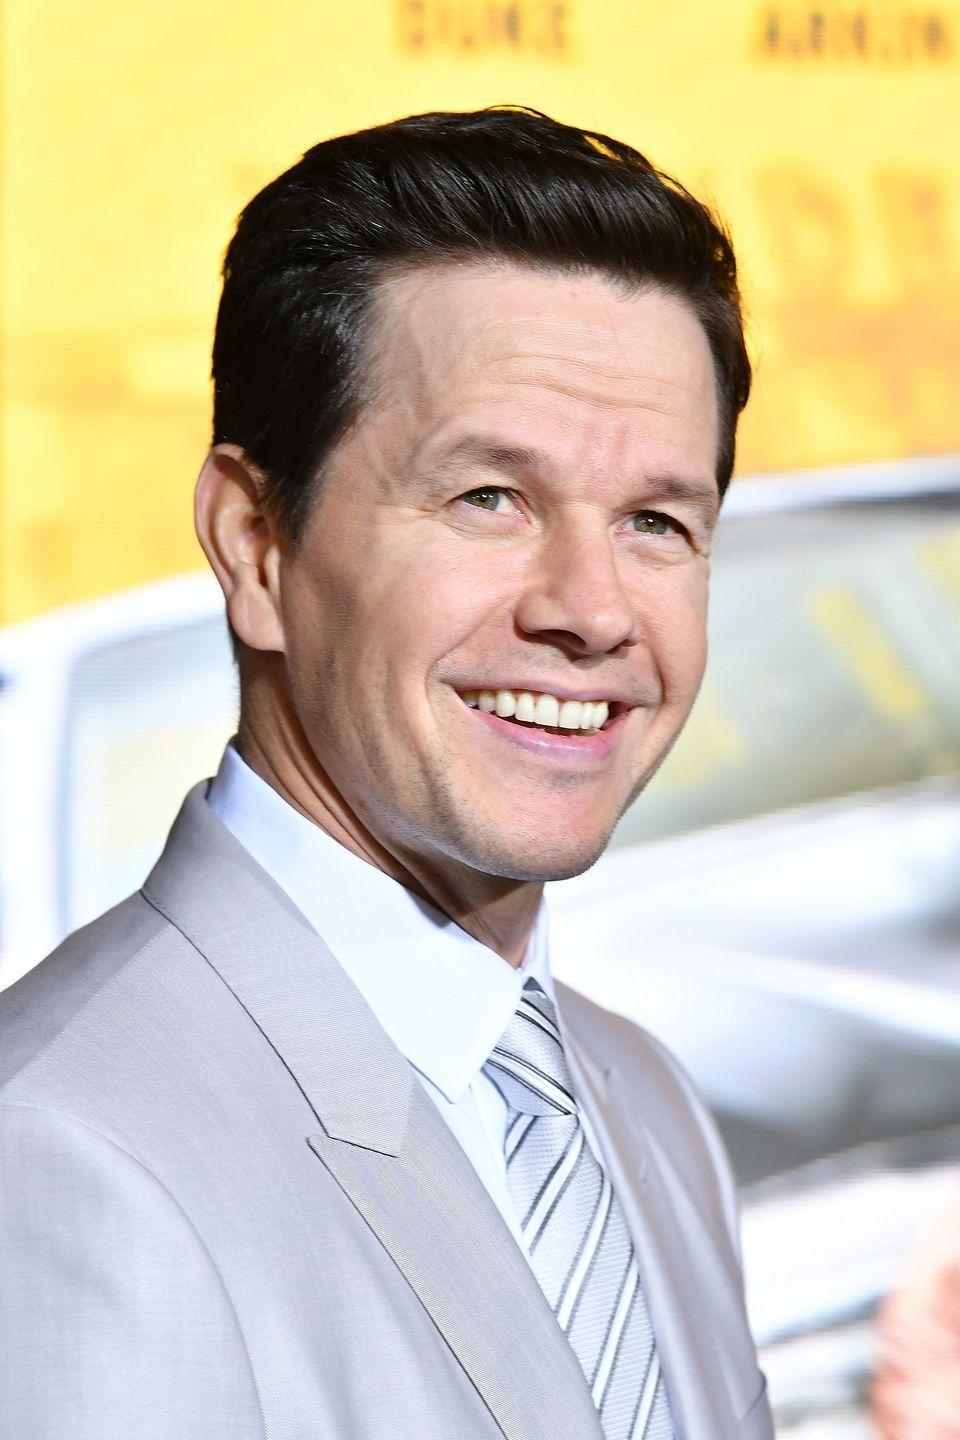 "<p>Wahlberg dislikes his role in <em>Boogie Nights </em>so much that he has literally begged God for forgiveness just for doing it. In the film, Wahlberg plays Dirk Diggler, an A-list porn star. When speaking about it to <a href=""https://www.chicagotribune.com/news/ct-met-cupich-wahlberg-1022-chicago-inc-20171020-story.html"" rel=""nofollow noopener"" target=""_blank"" data-ylk=""slk:Chicago Inc."" class=""link rapid-noclick-resp"">Chicago Inc.</a>, he said, ""I just always hope that God is a movie fan and also forgiving because I've made some poor choices in my past."" He added, ""<em>Boogie Nights</em> is up there at the top of the list.""</p>"